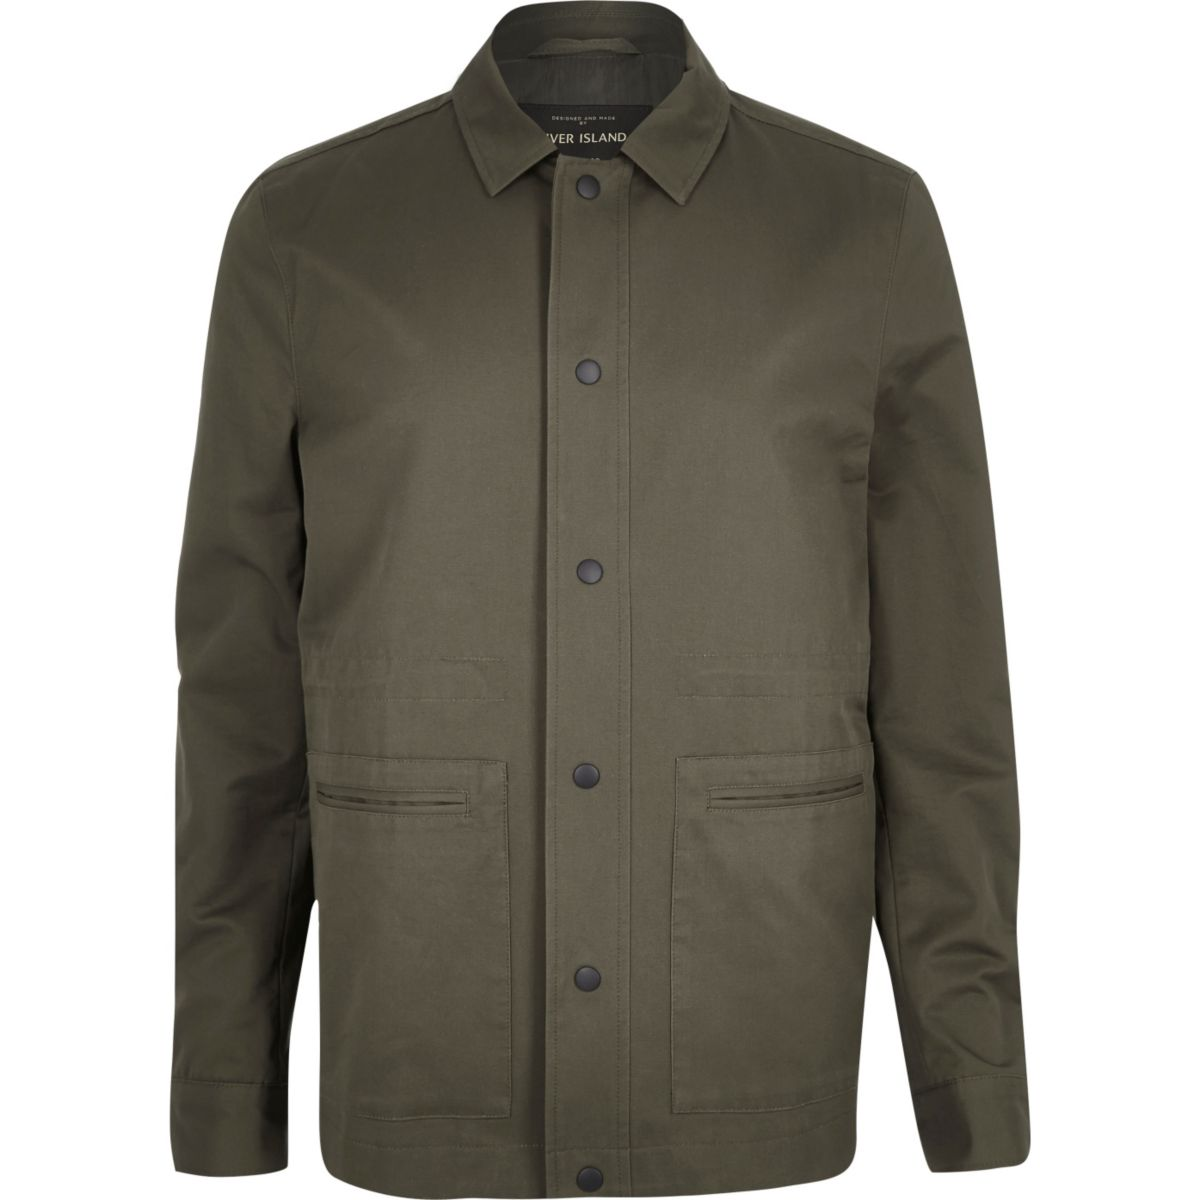 Khaki green casual minimal worker jacket